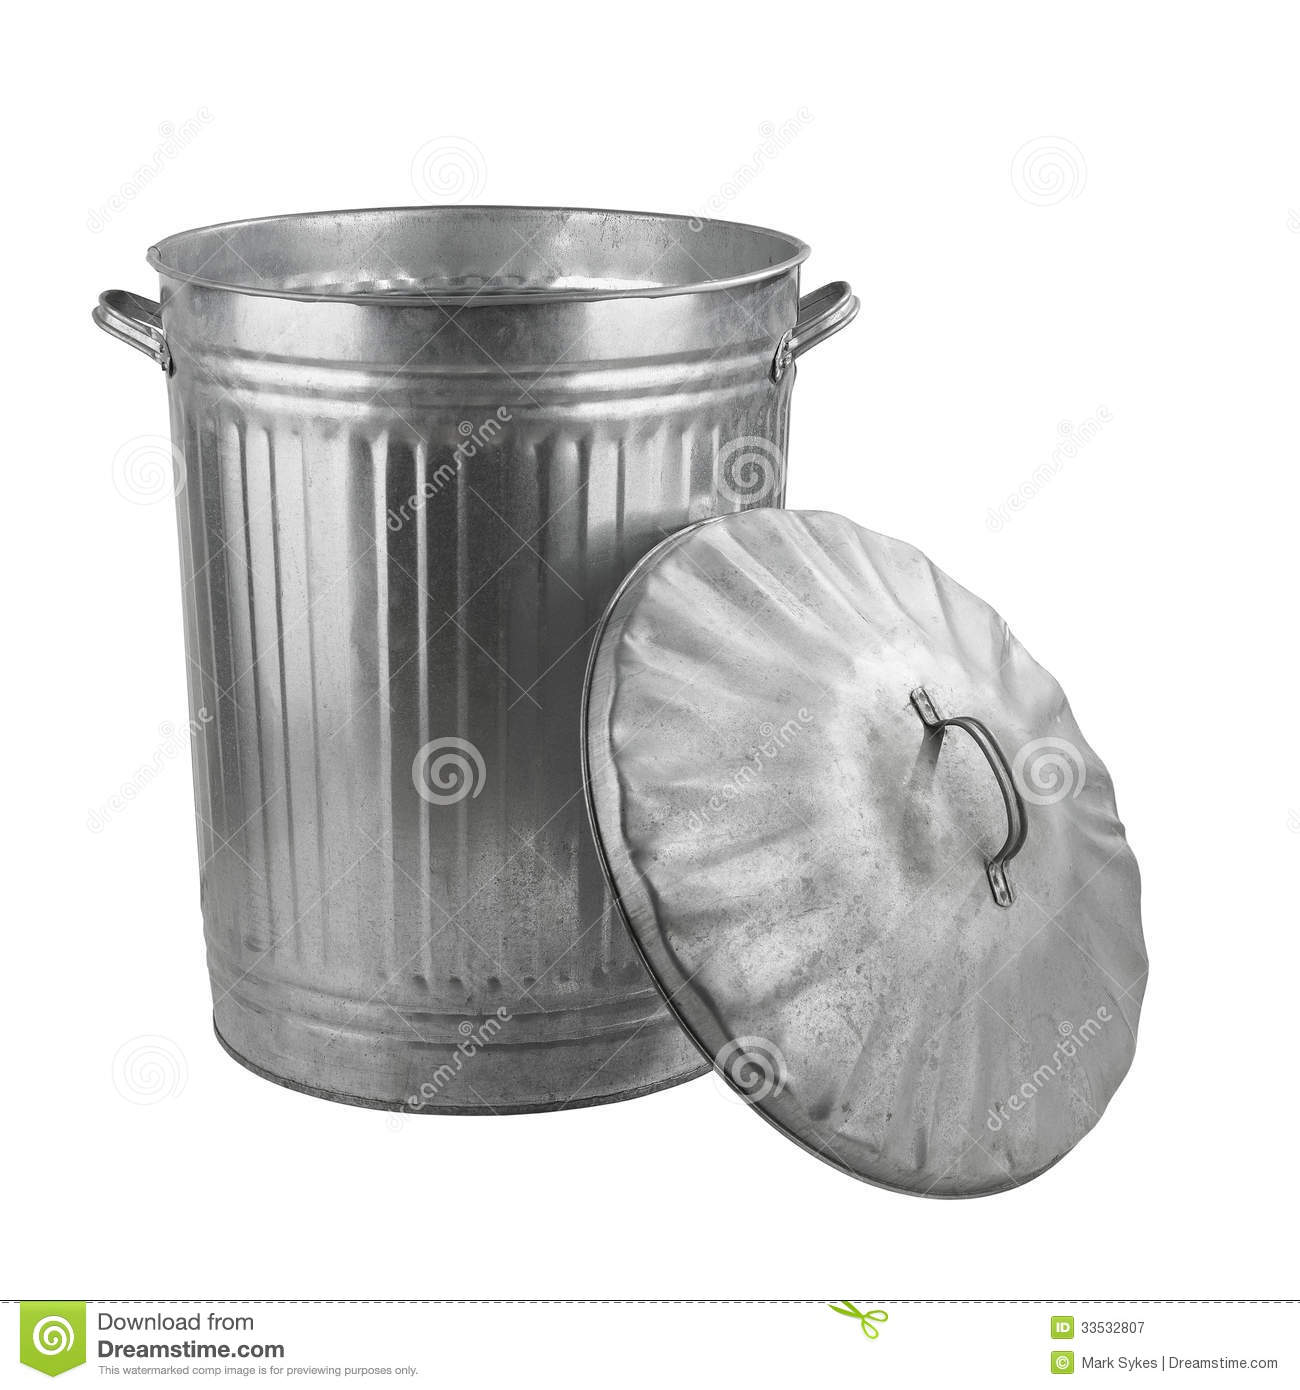 Silver Trash Cans Silver Steel Trash Can Stock Image Image Of Background